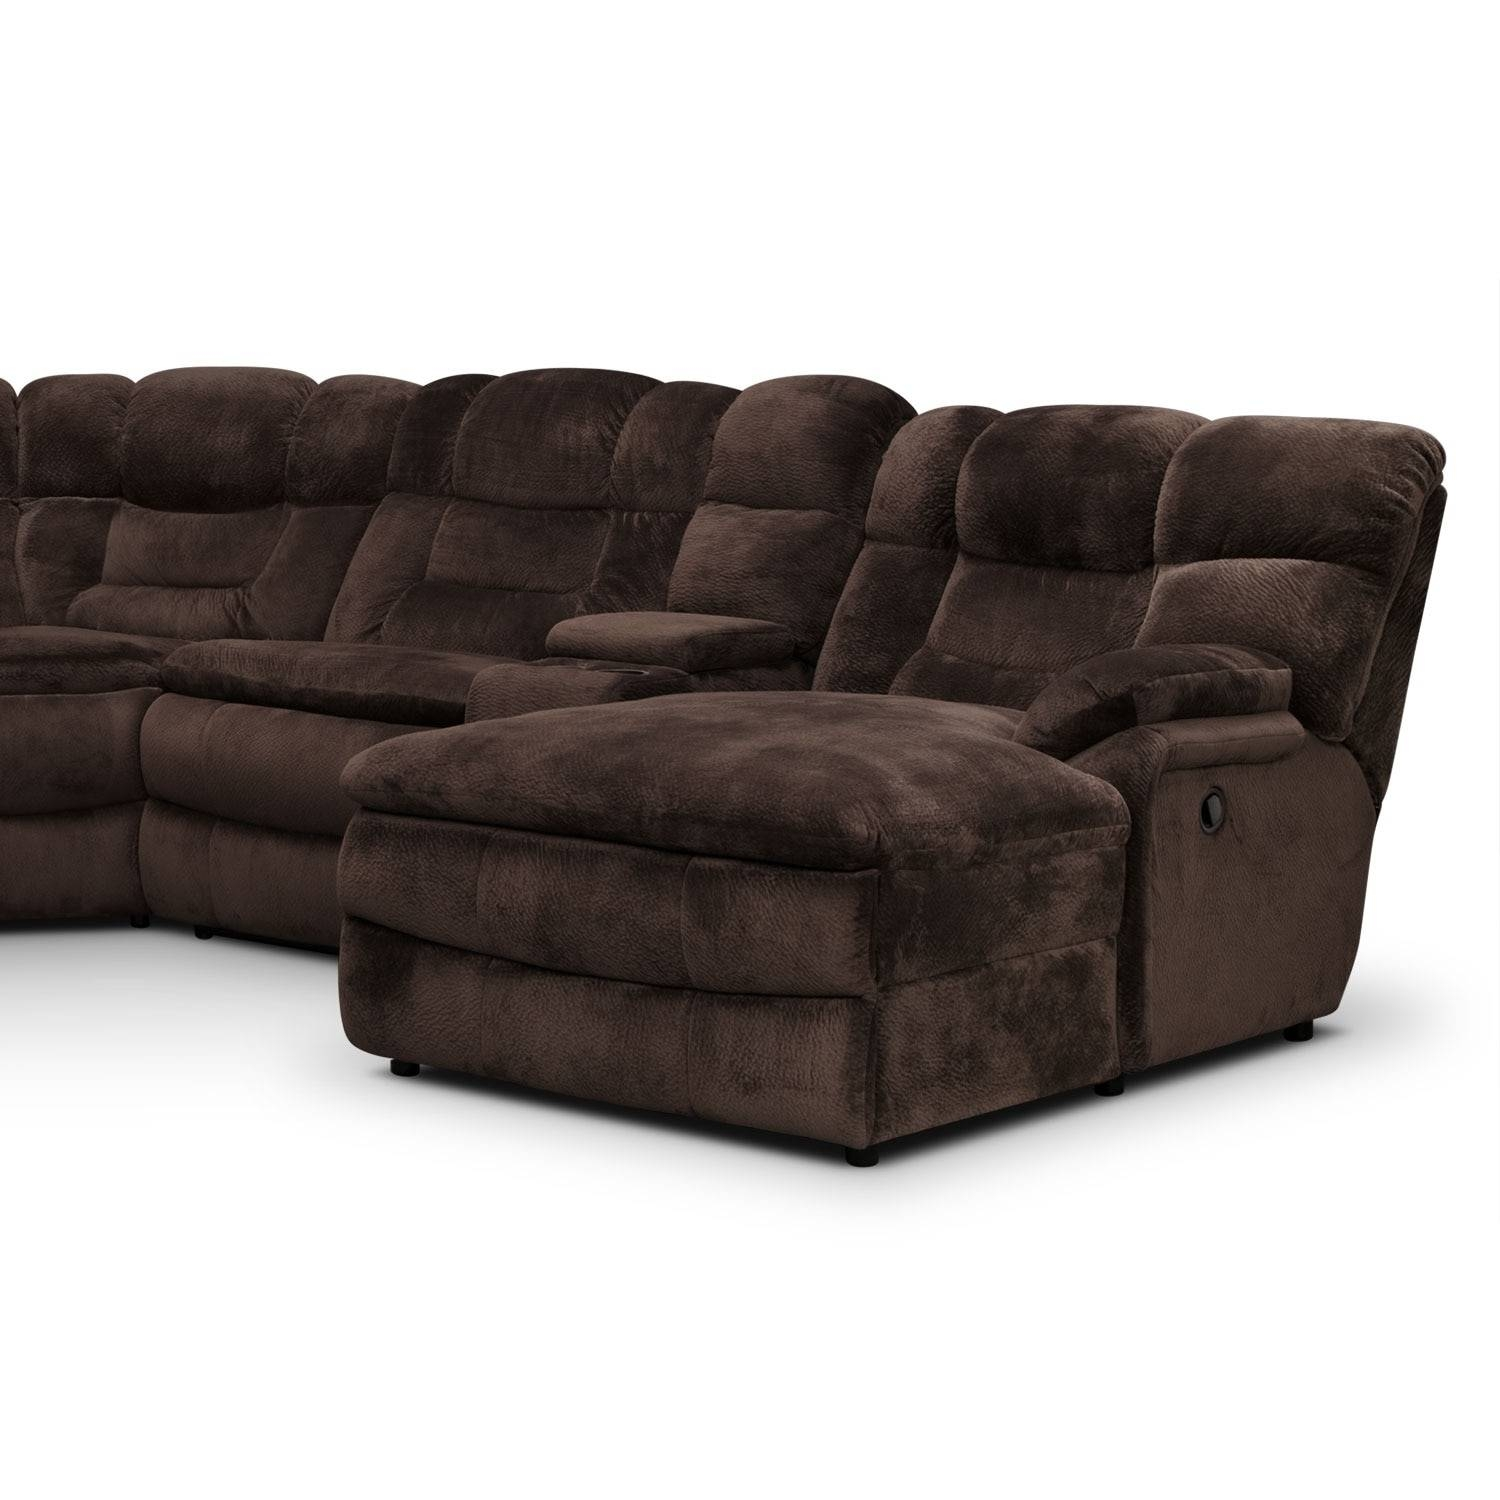 Inspirational Reclining Sectional Sofas Microfiber 56 About with regard to 45 Degree Sectional Sofa (Image 10 of 30)